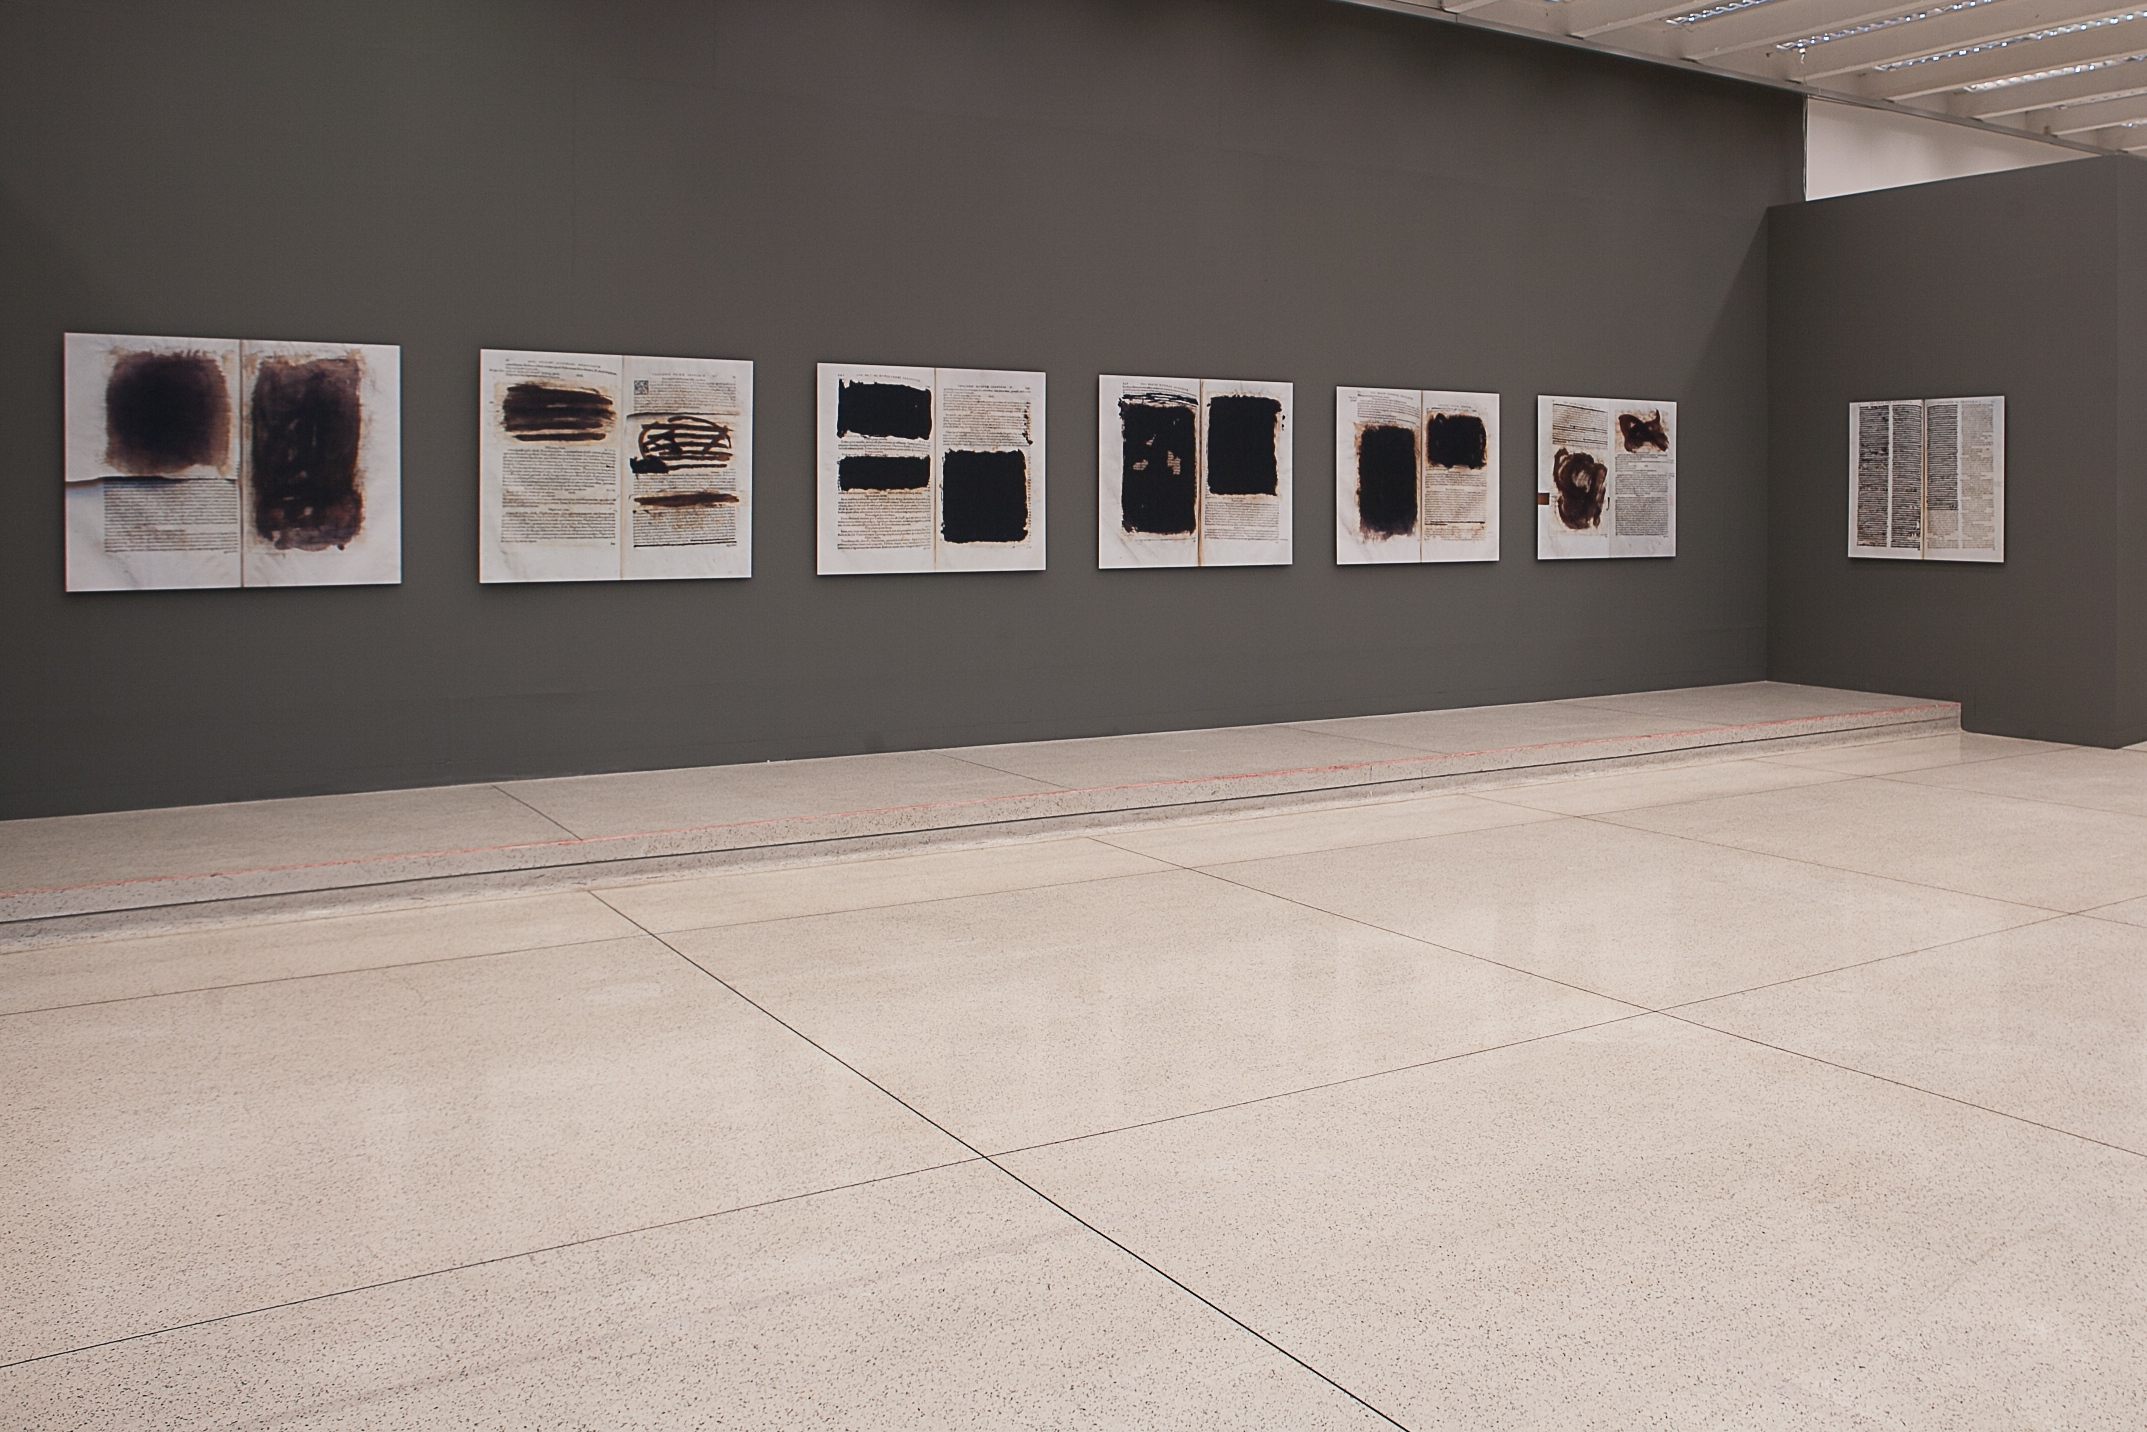 Censored . Installation view. Museu Oscar Niemeyer, Brazil, 2015.